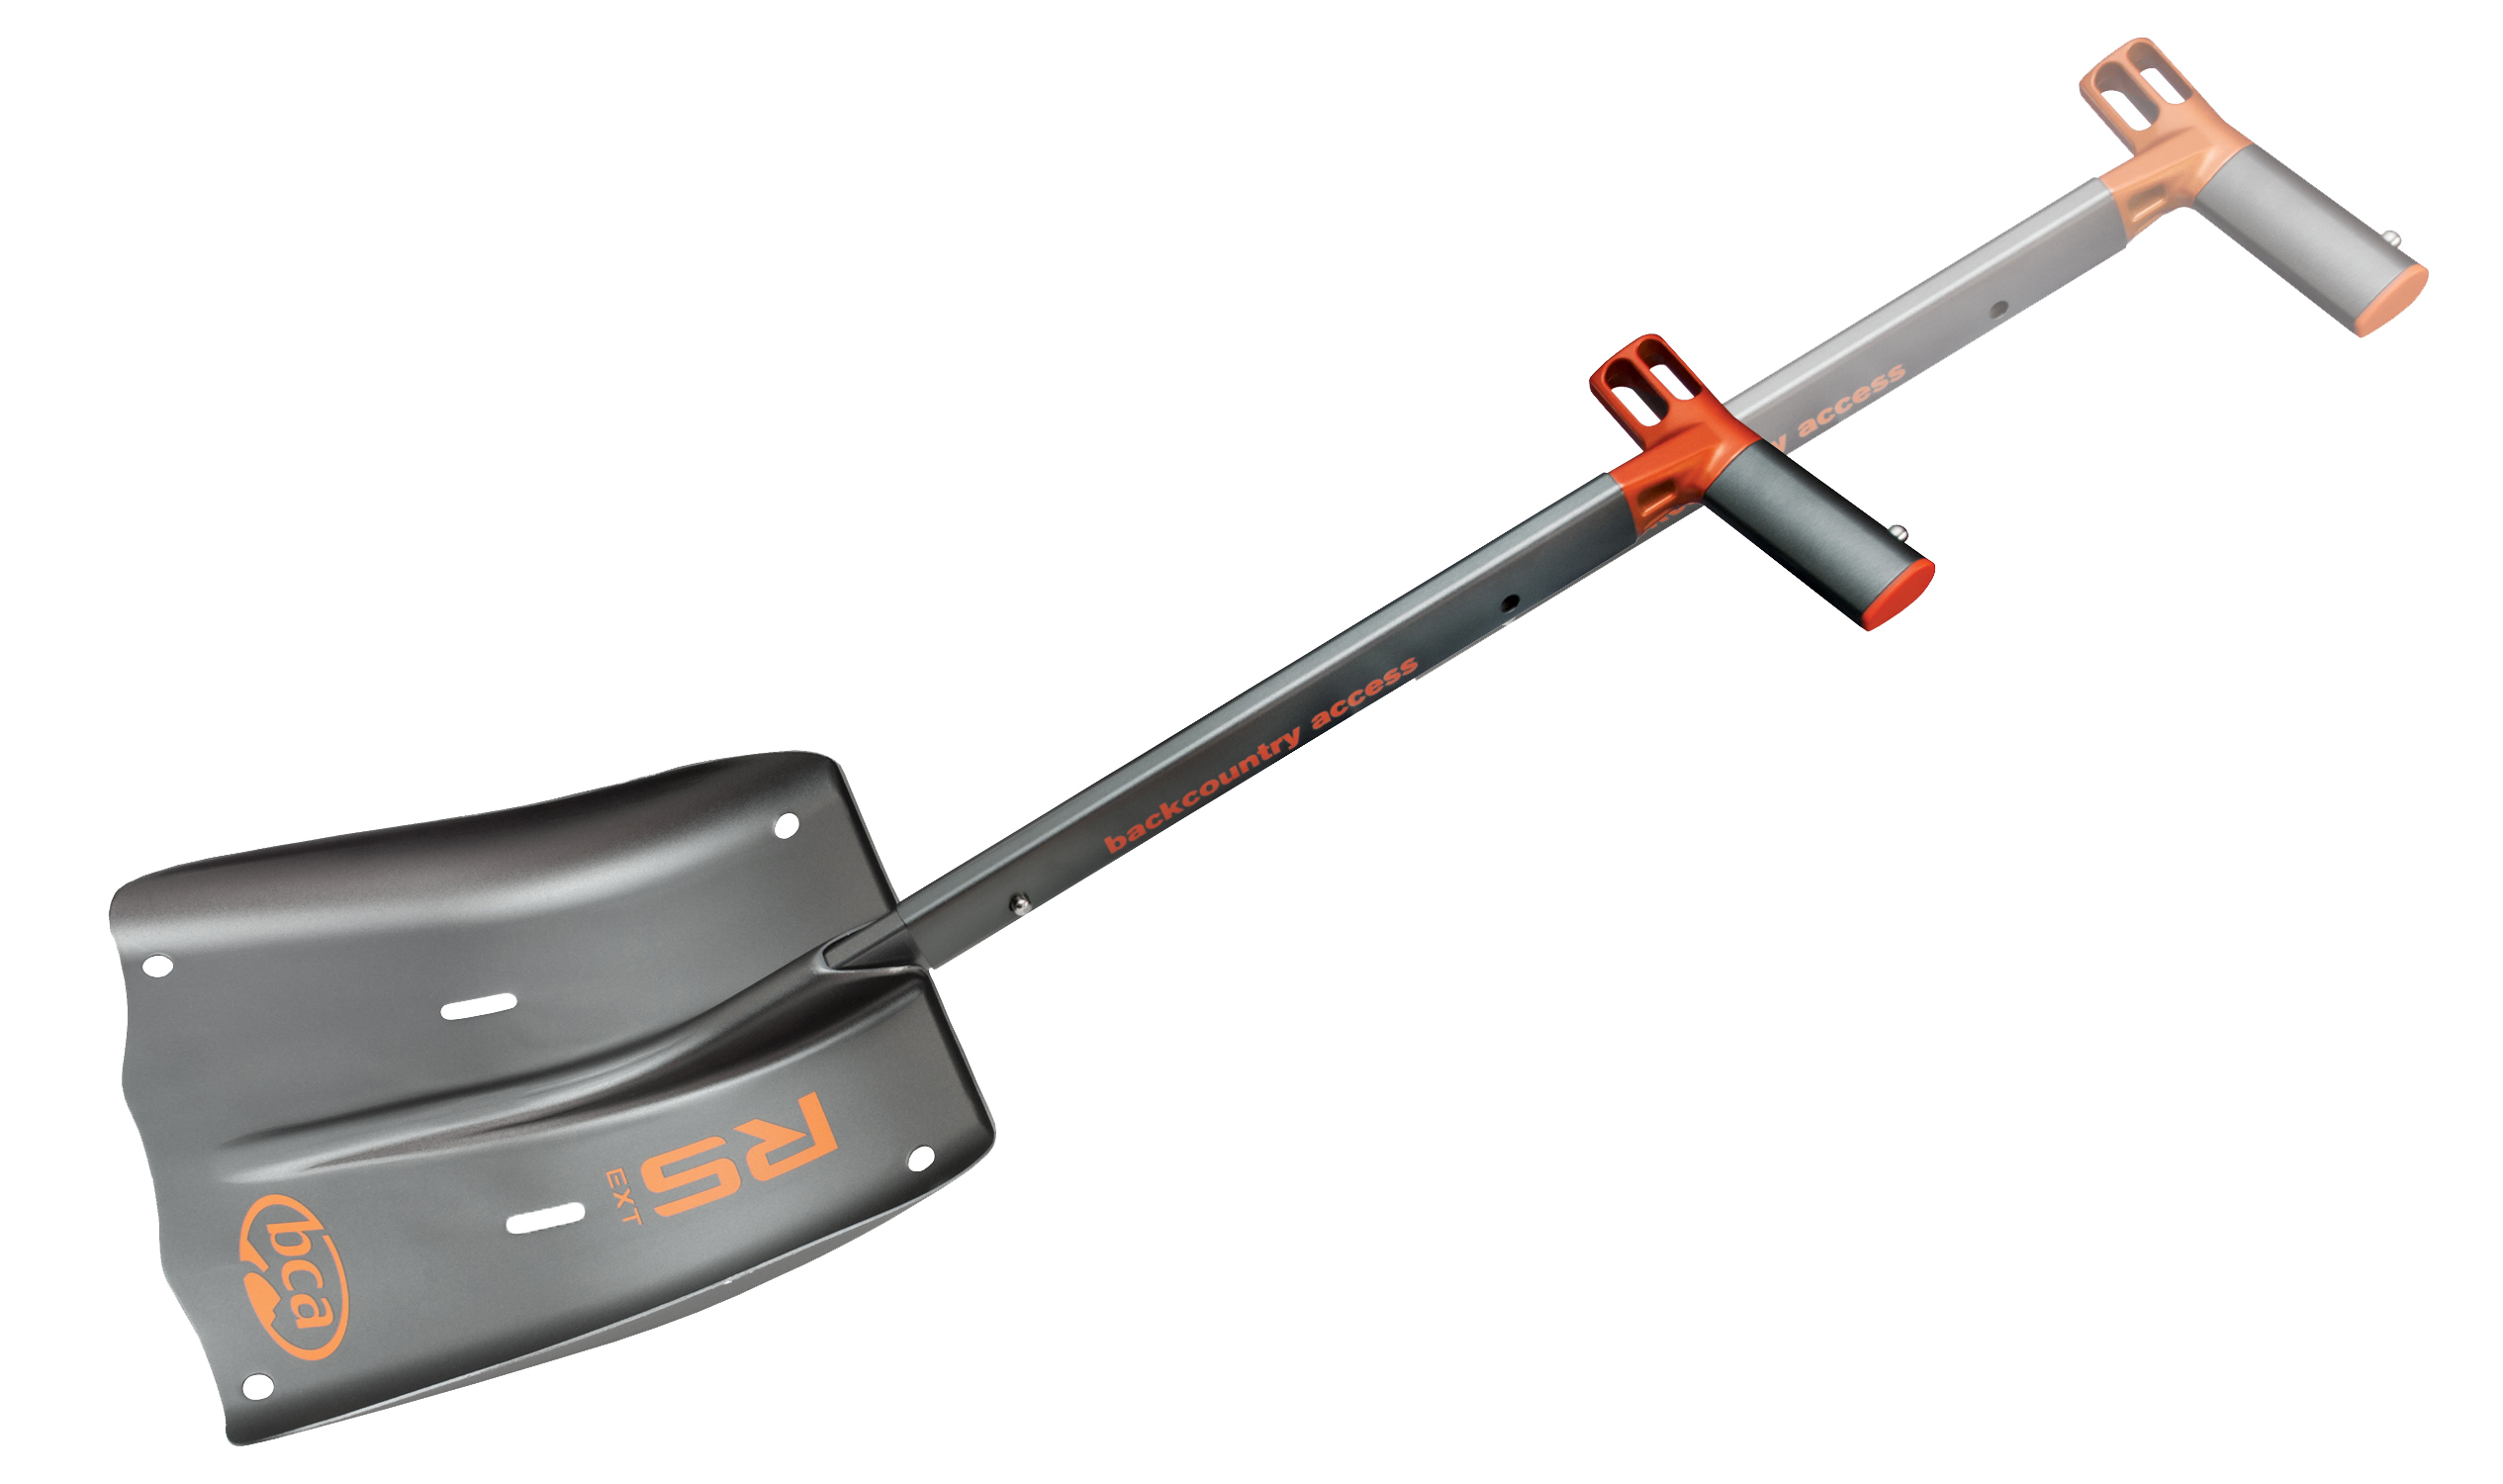 2530x1500 Backcountry Access Rs Ext Avalanche Shovel